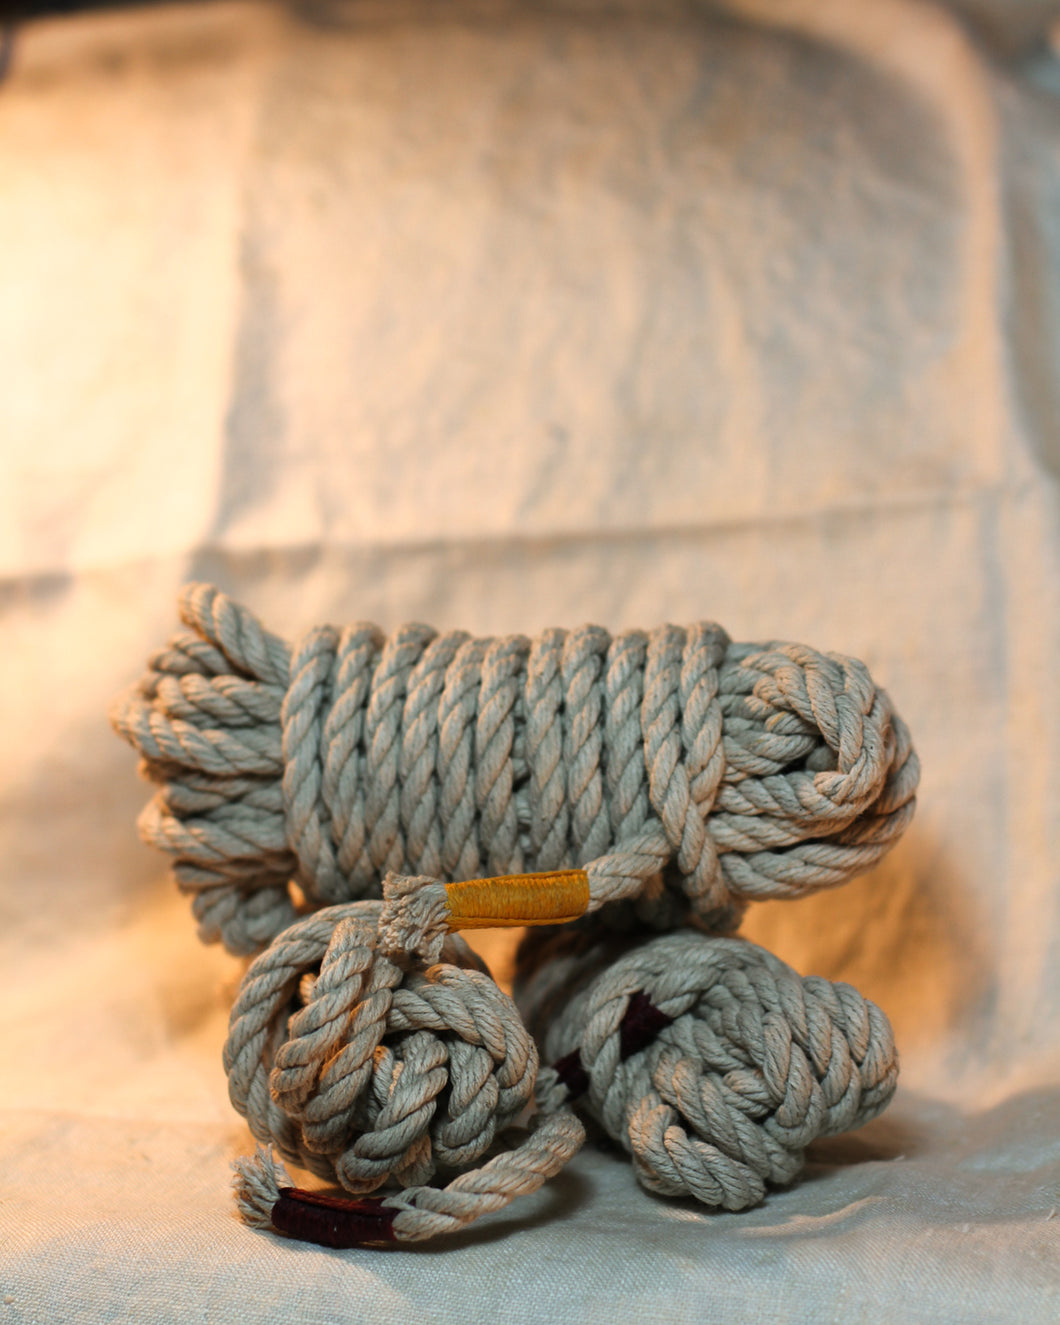 6mm hemp rope